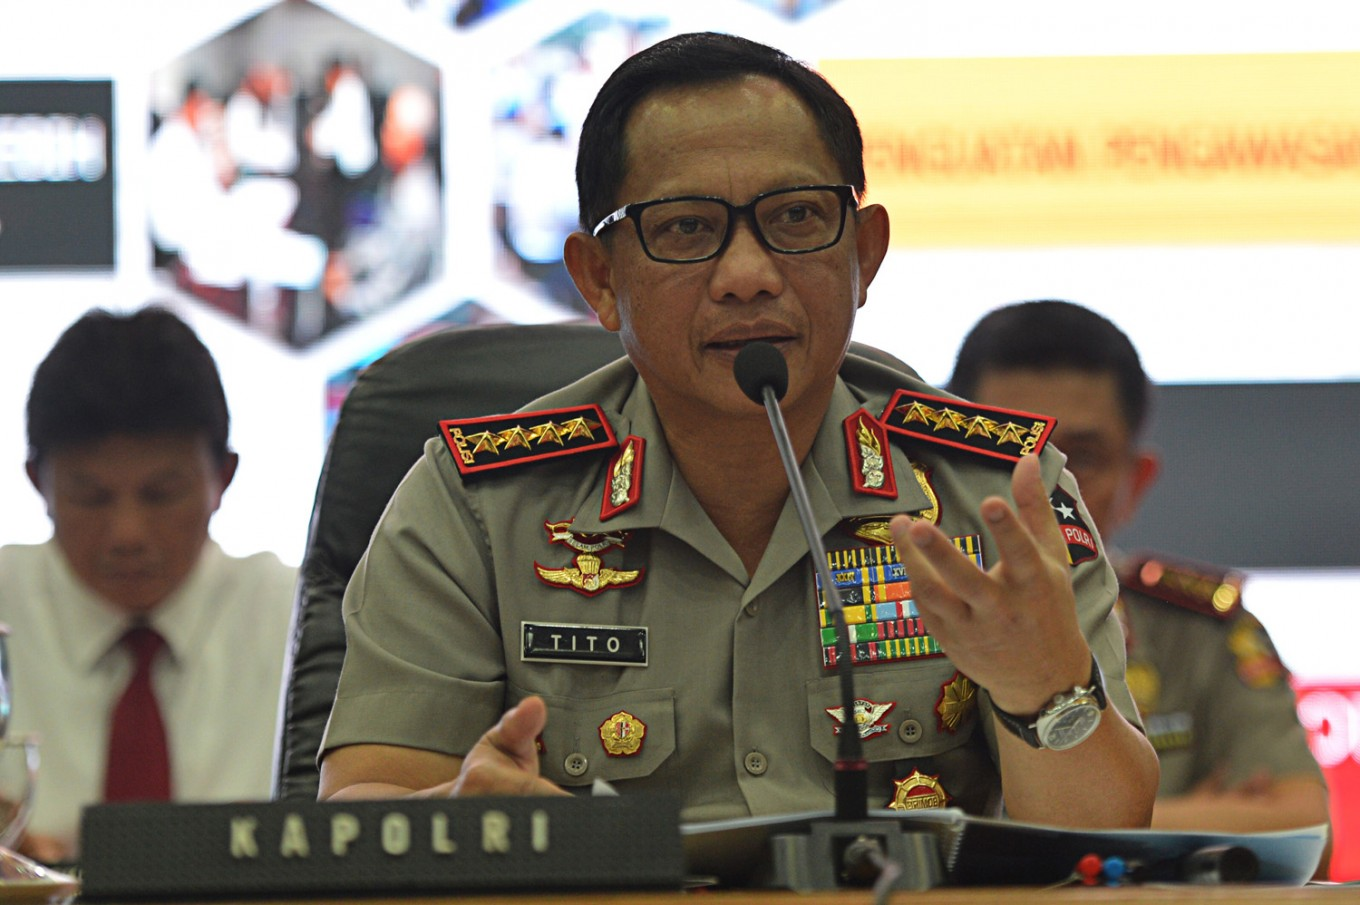 Capital punishment an effective way to combat drug dealers: Tito